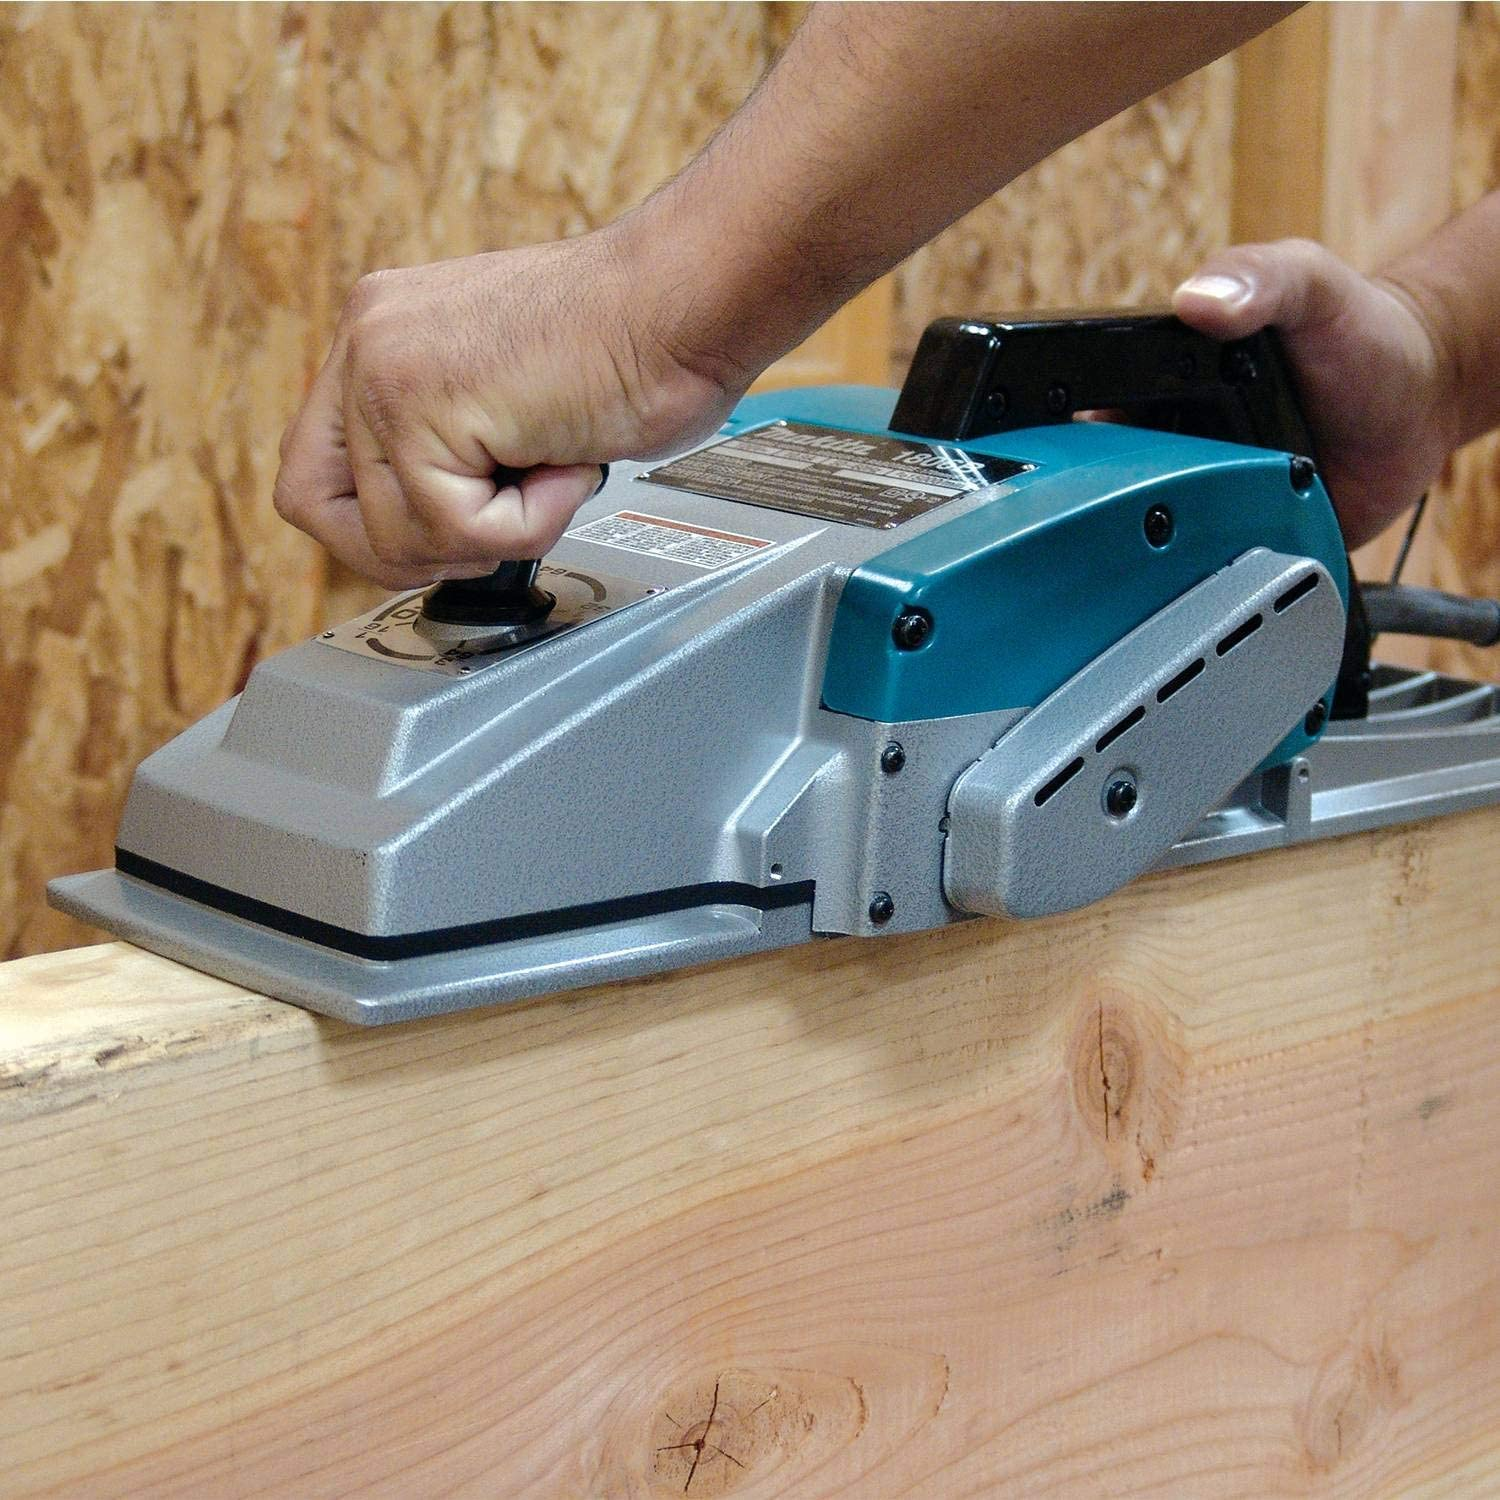 Makita 1806B Electric Hand Planers product image 4